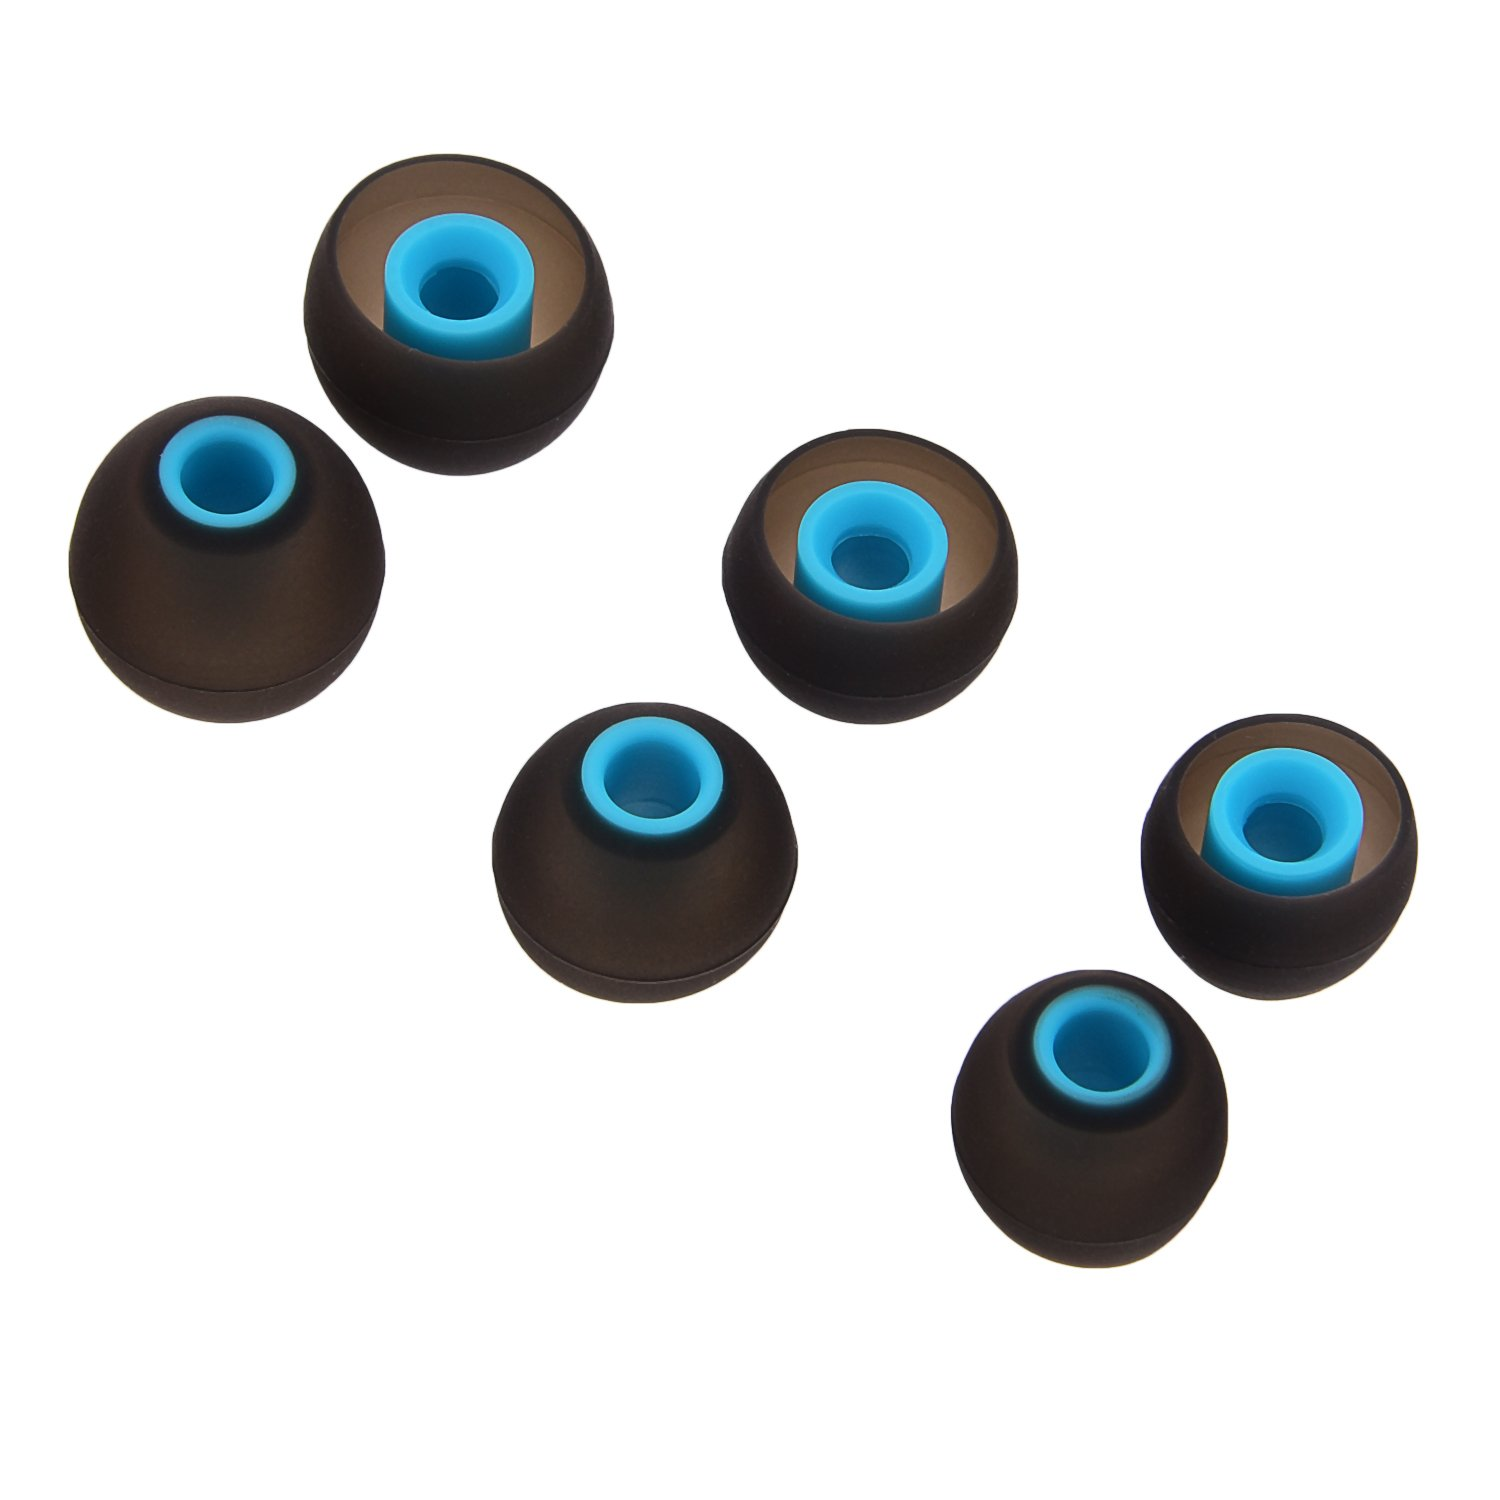 10 Clear FIXED Star 20 Pcs Medium Silicone Earbud Cap Tip Cover Replacement 10 Black